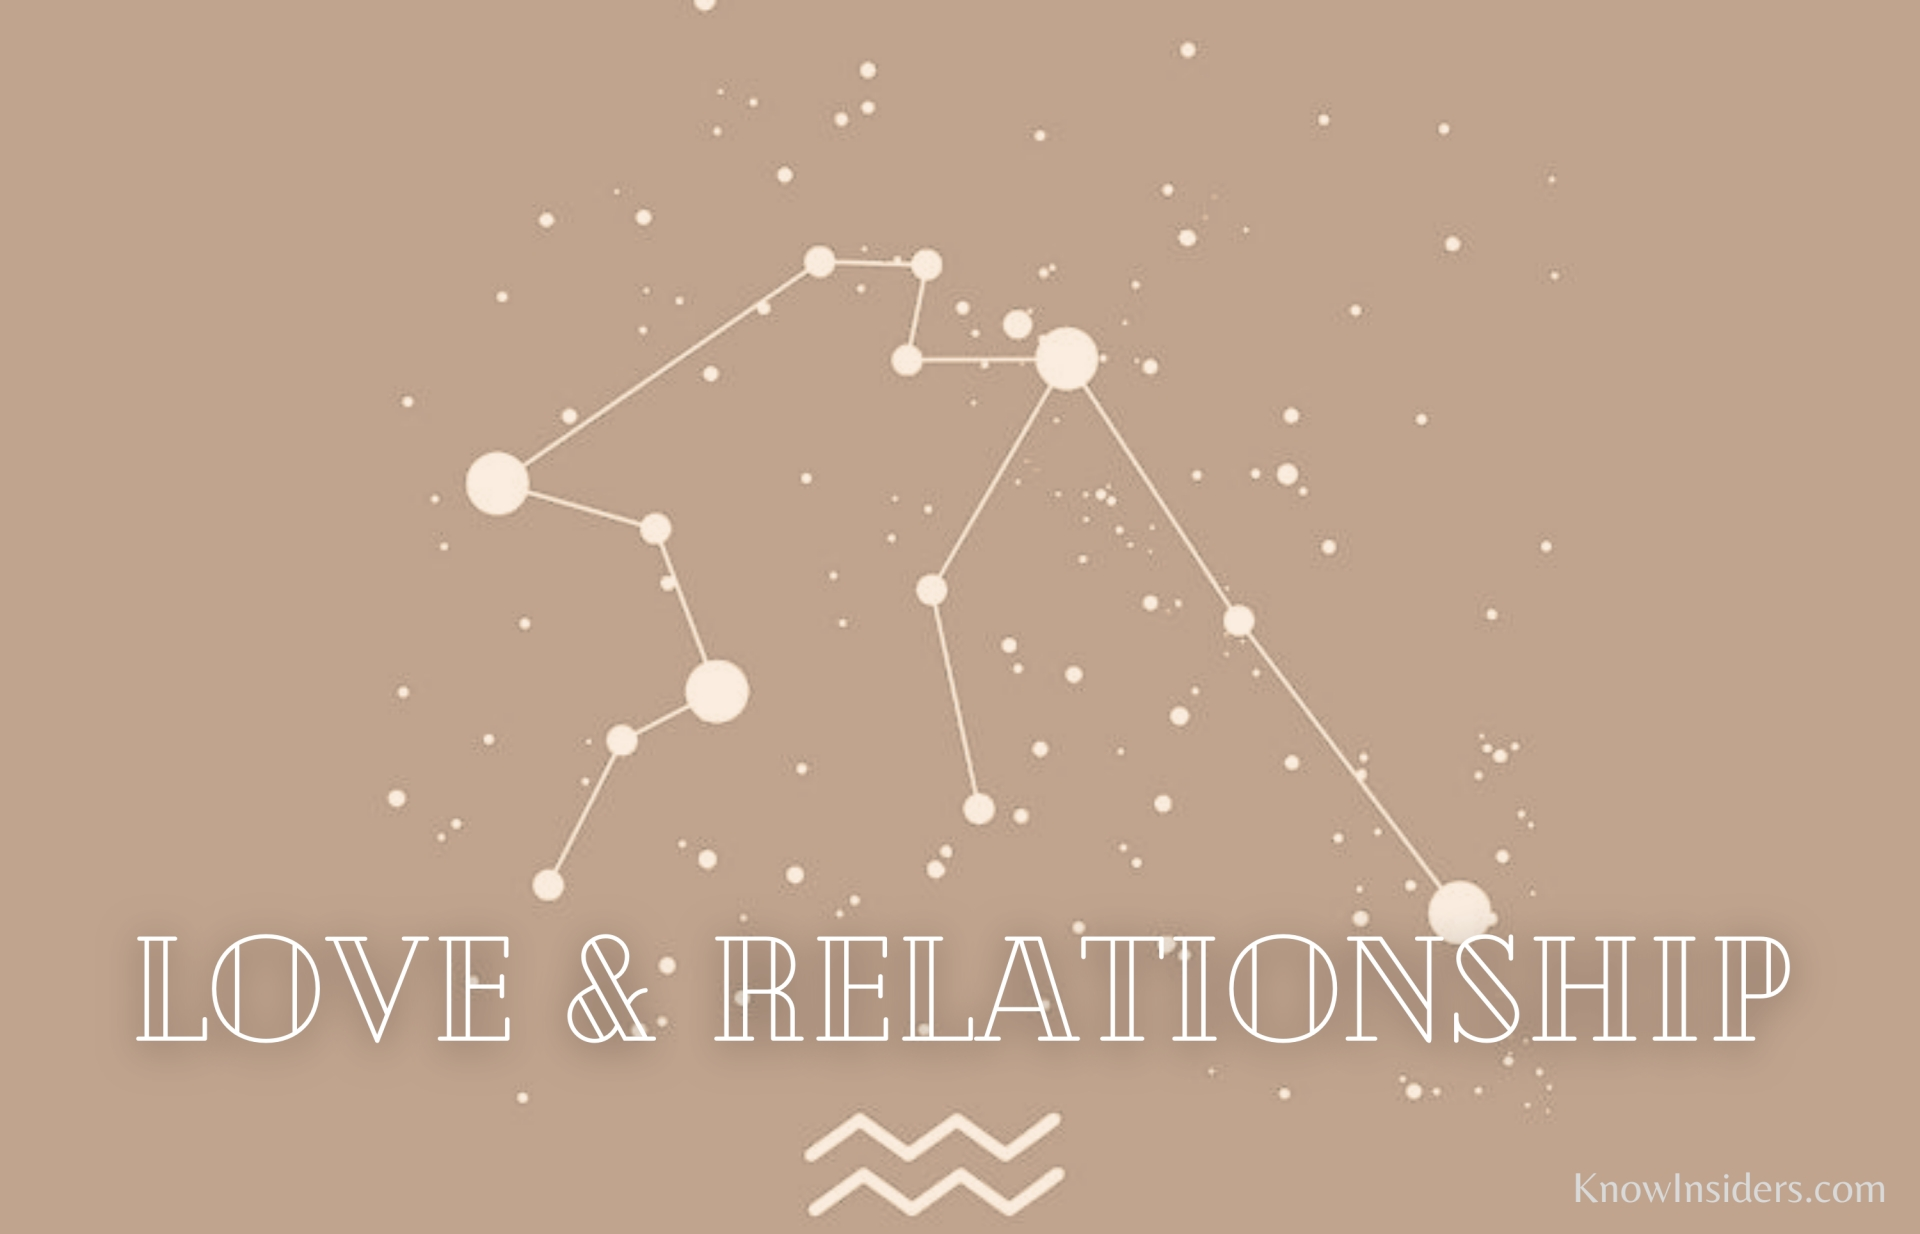 AQUARIUS Horoscope: Astrological Prediction for Love, Family and Relationship